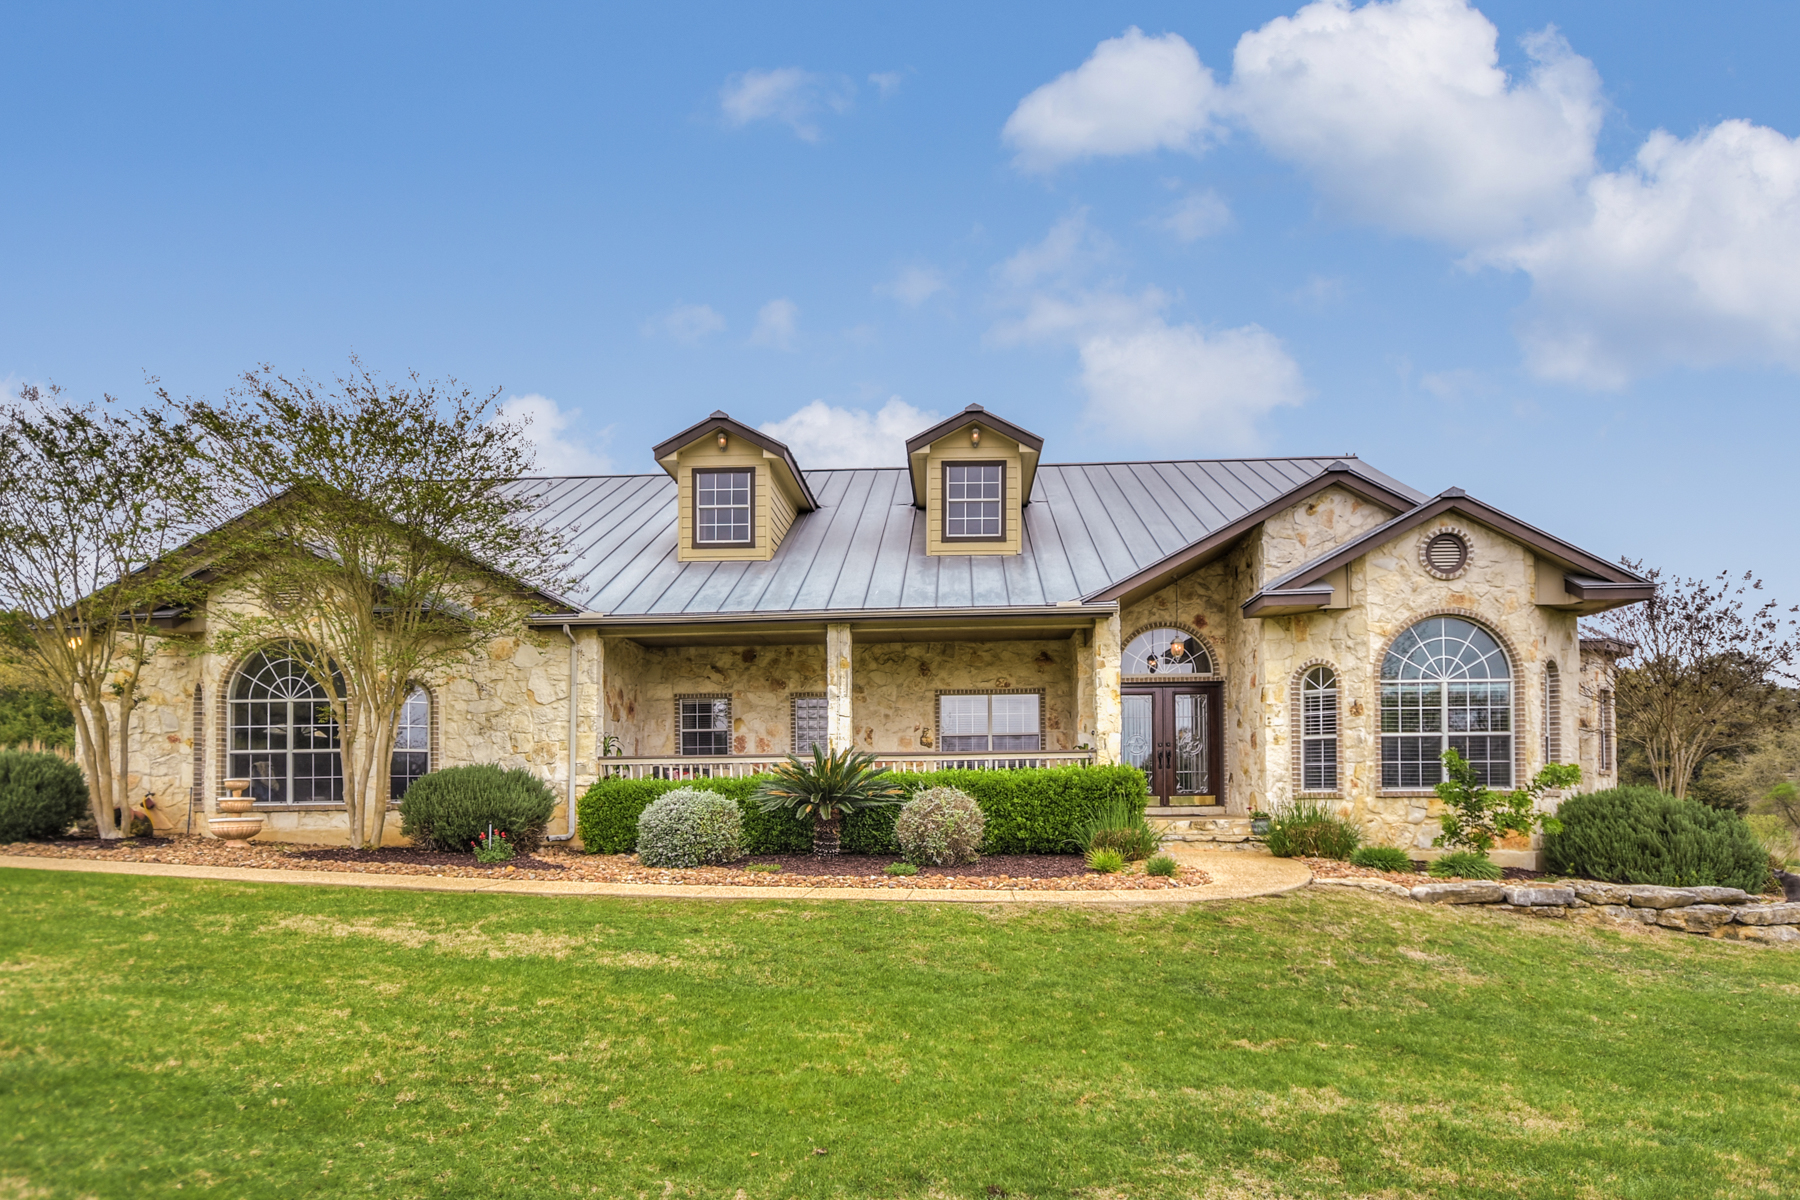 Single Family Home for Sale at Classic Hill Country Home in Saddleridge 2904 Bison Ridge Dr Bulverde, Texas 78006 United States